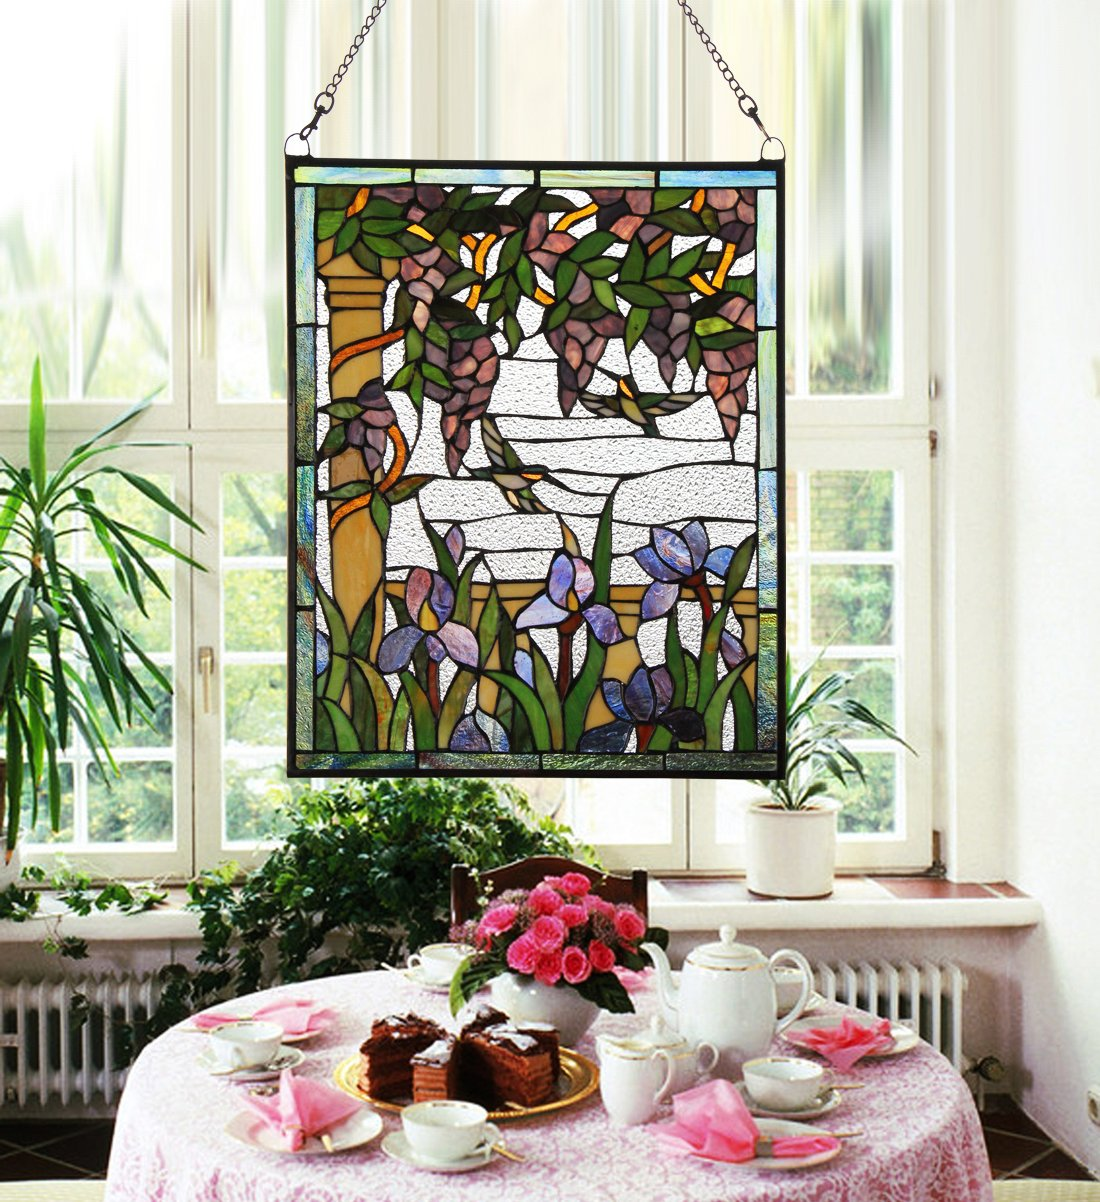 Makenier Vintage Tiffany Style Stained Art Glass Wisteria